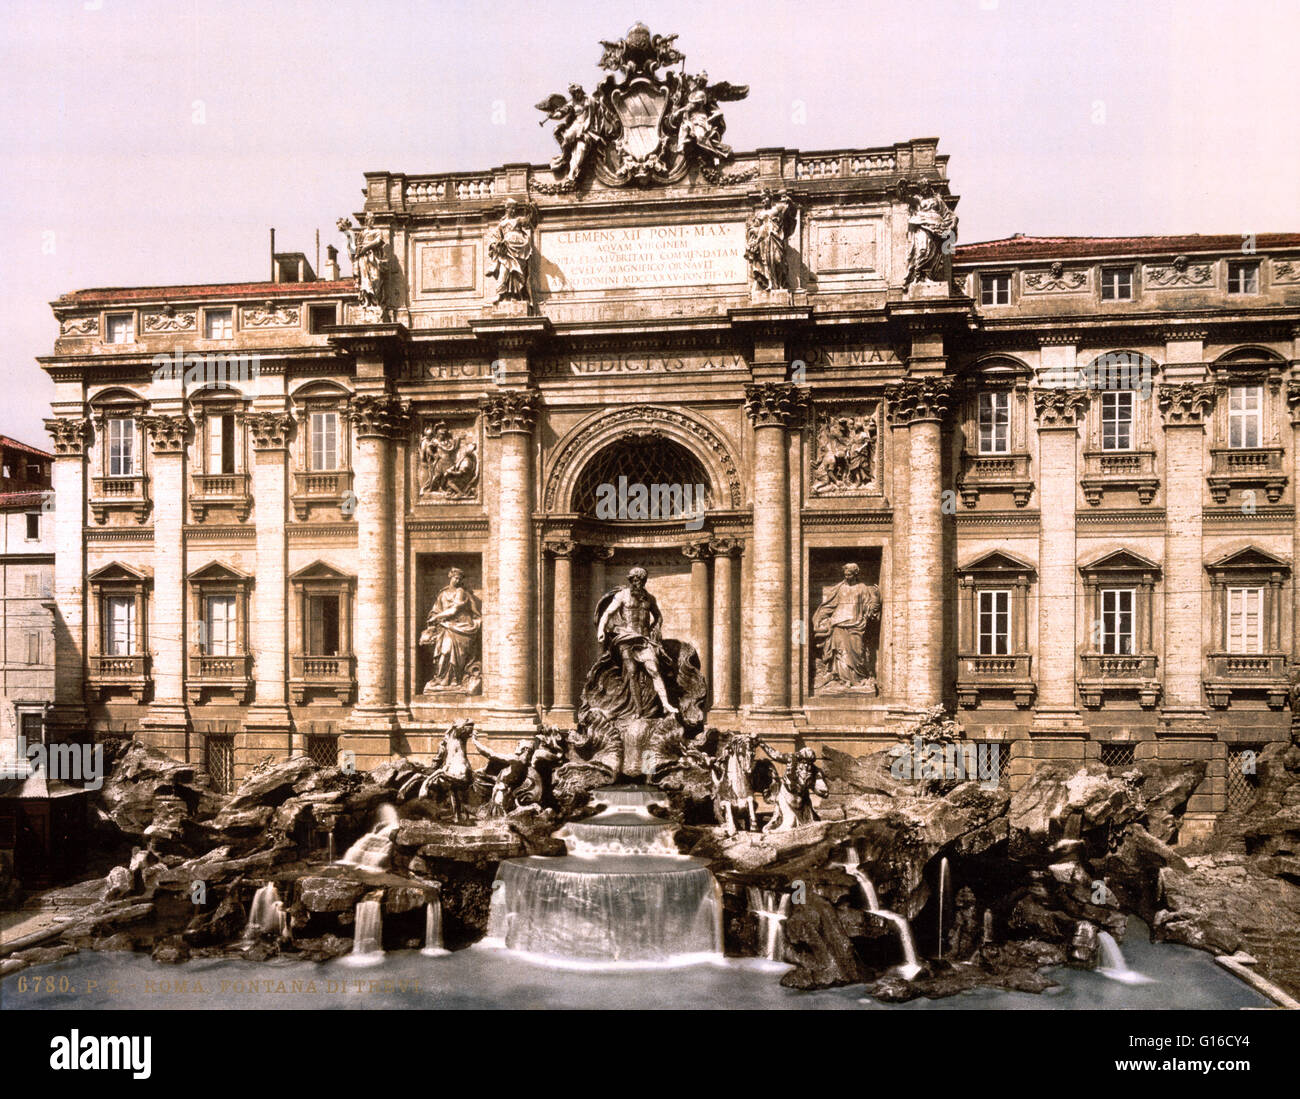 Trevi Fountain is a fountain in the Trevi district in Rome, Italy, designed by Italian architect Nicola Salvi and Stock Photo